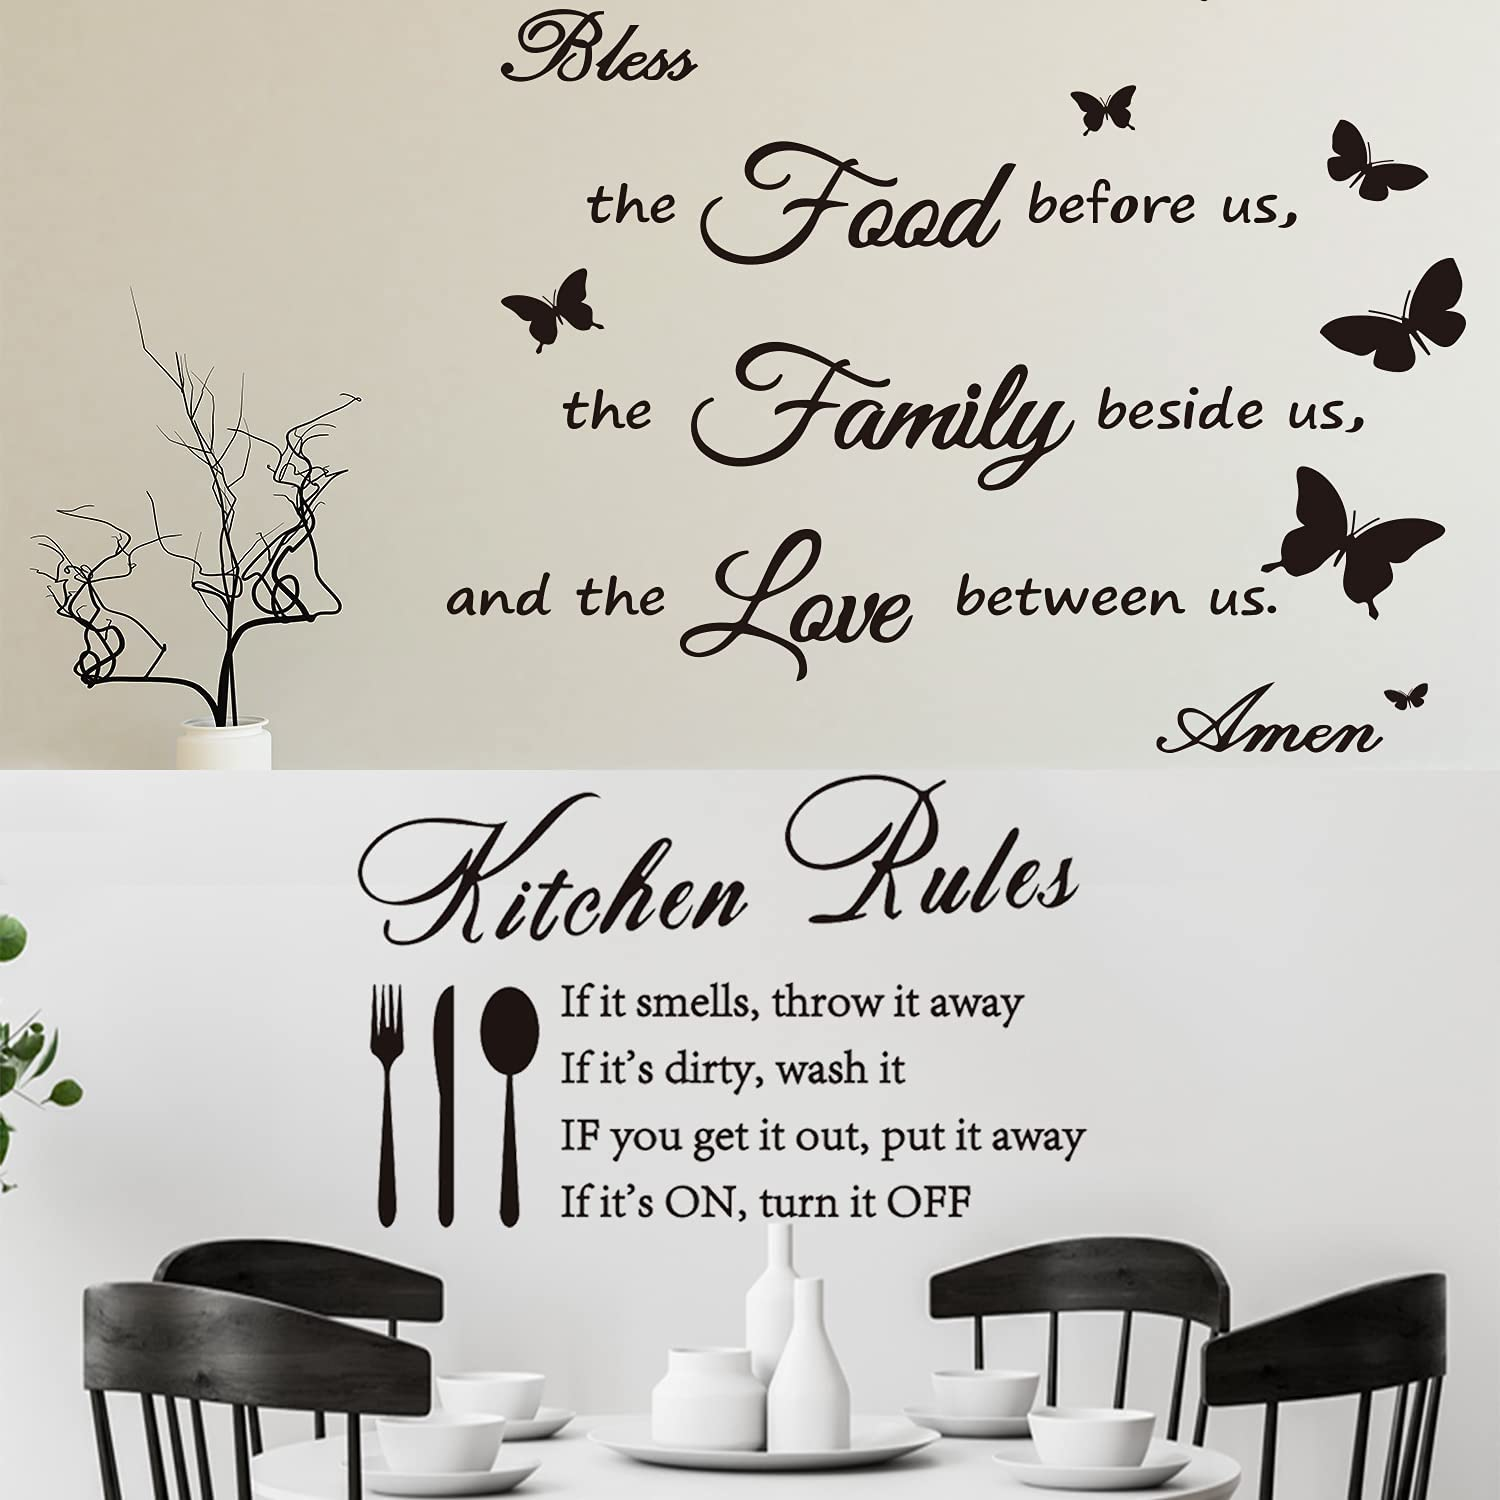 Cmaone Dinner Prayer Wall Decals Kitchen Rules Wall Stickers Bless The Food Before us Sign Butterfly Wall Sticker Quote Decal Removable Vinyl Art Decoration for Home Kitchen Dining Room, 2 Styles